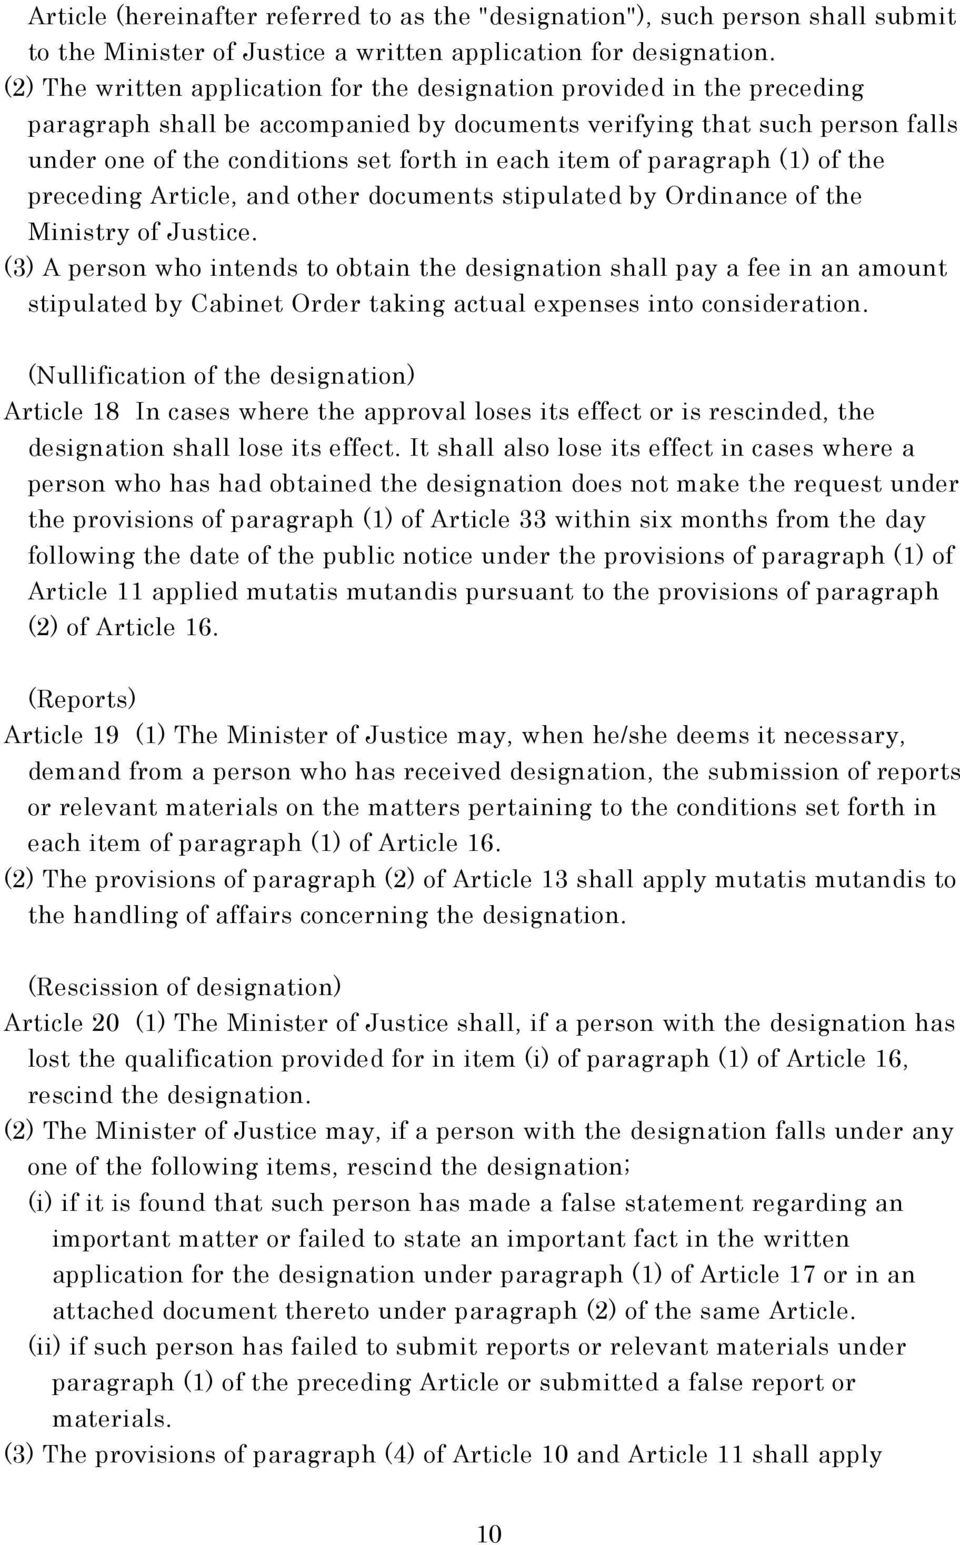 item of paragraph (1) of the preceding Article, and other documents stipulated by Ordinance of the Ministry of Justice.